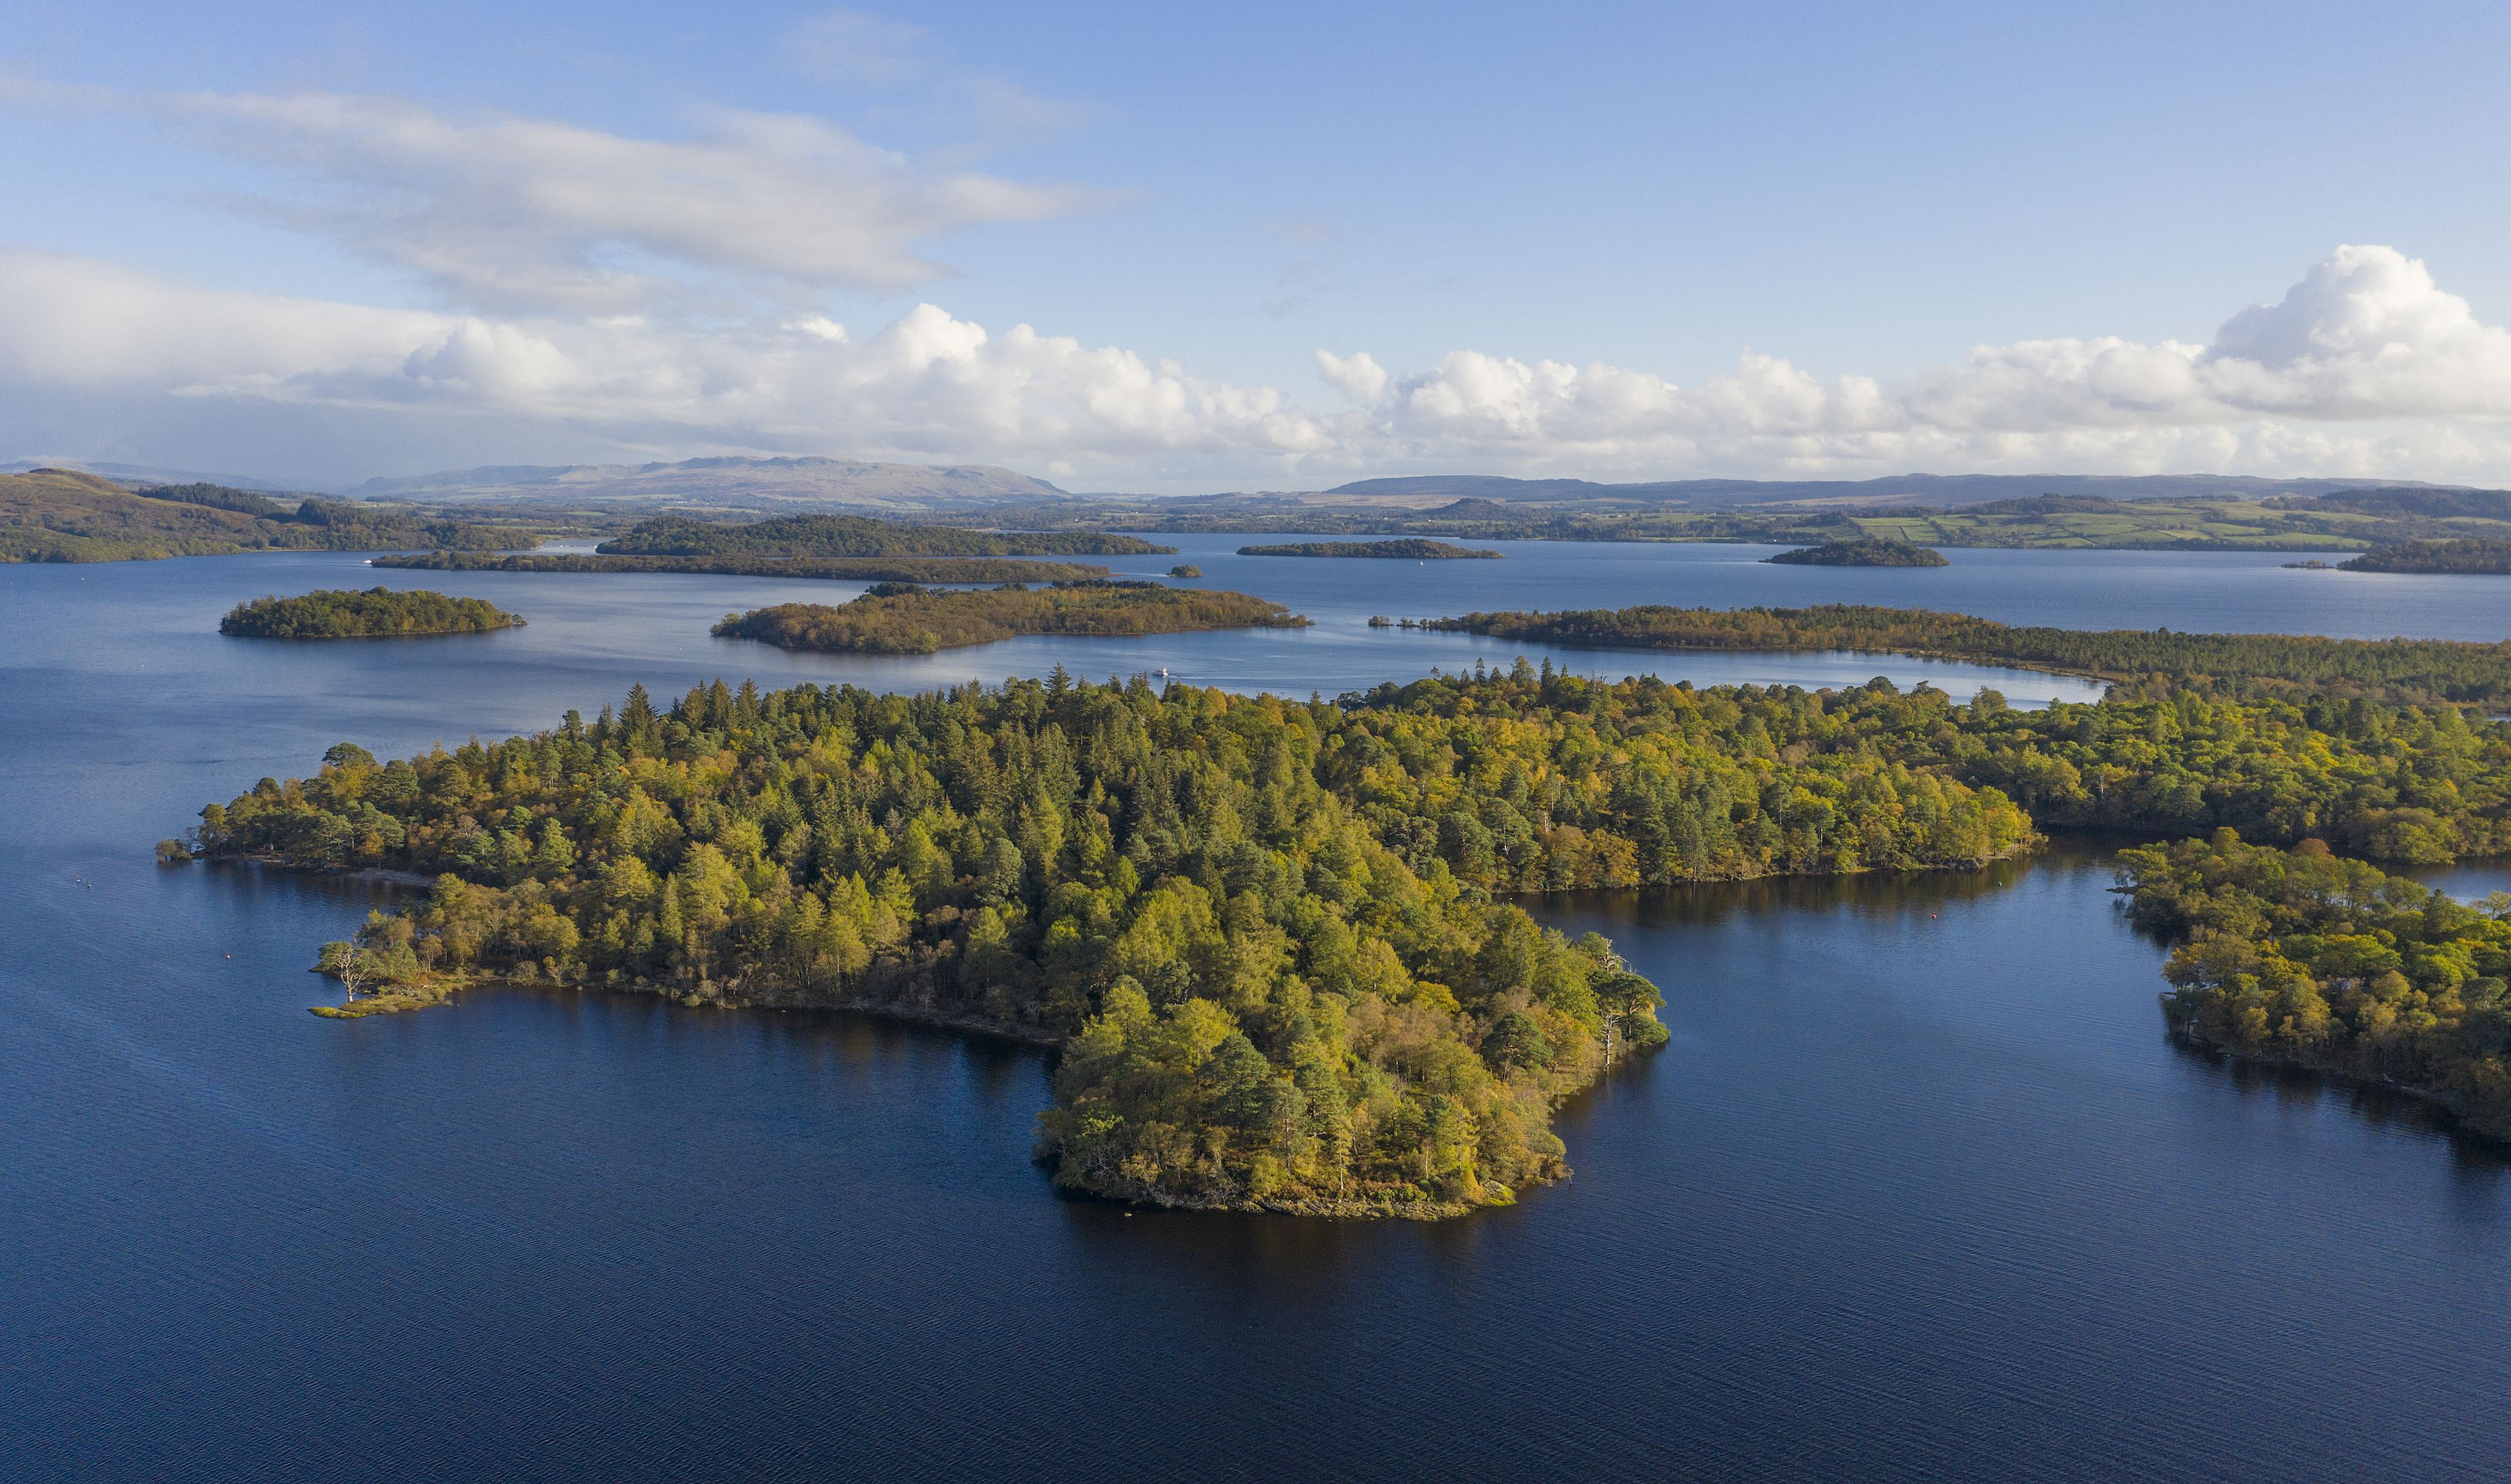 This private island is for sale in Loch Lomond, Scotland – and it's the same price as a London flat